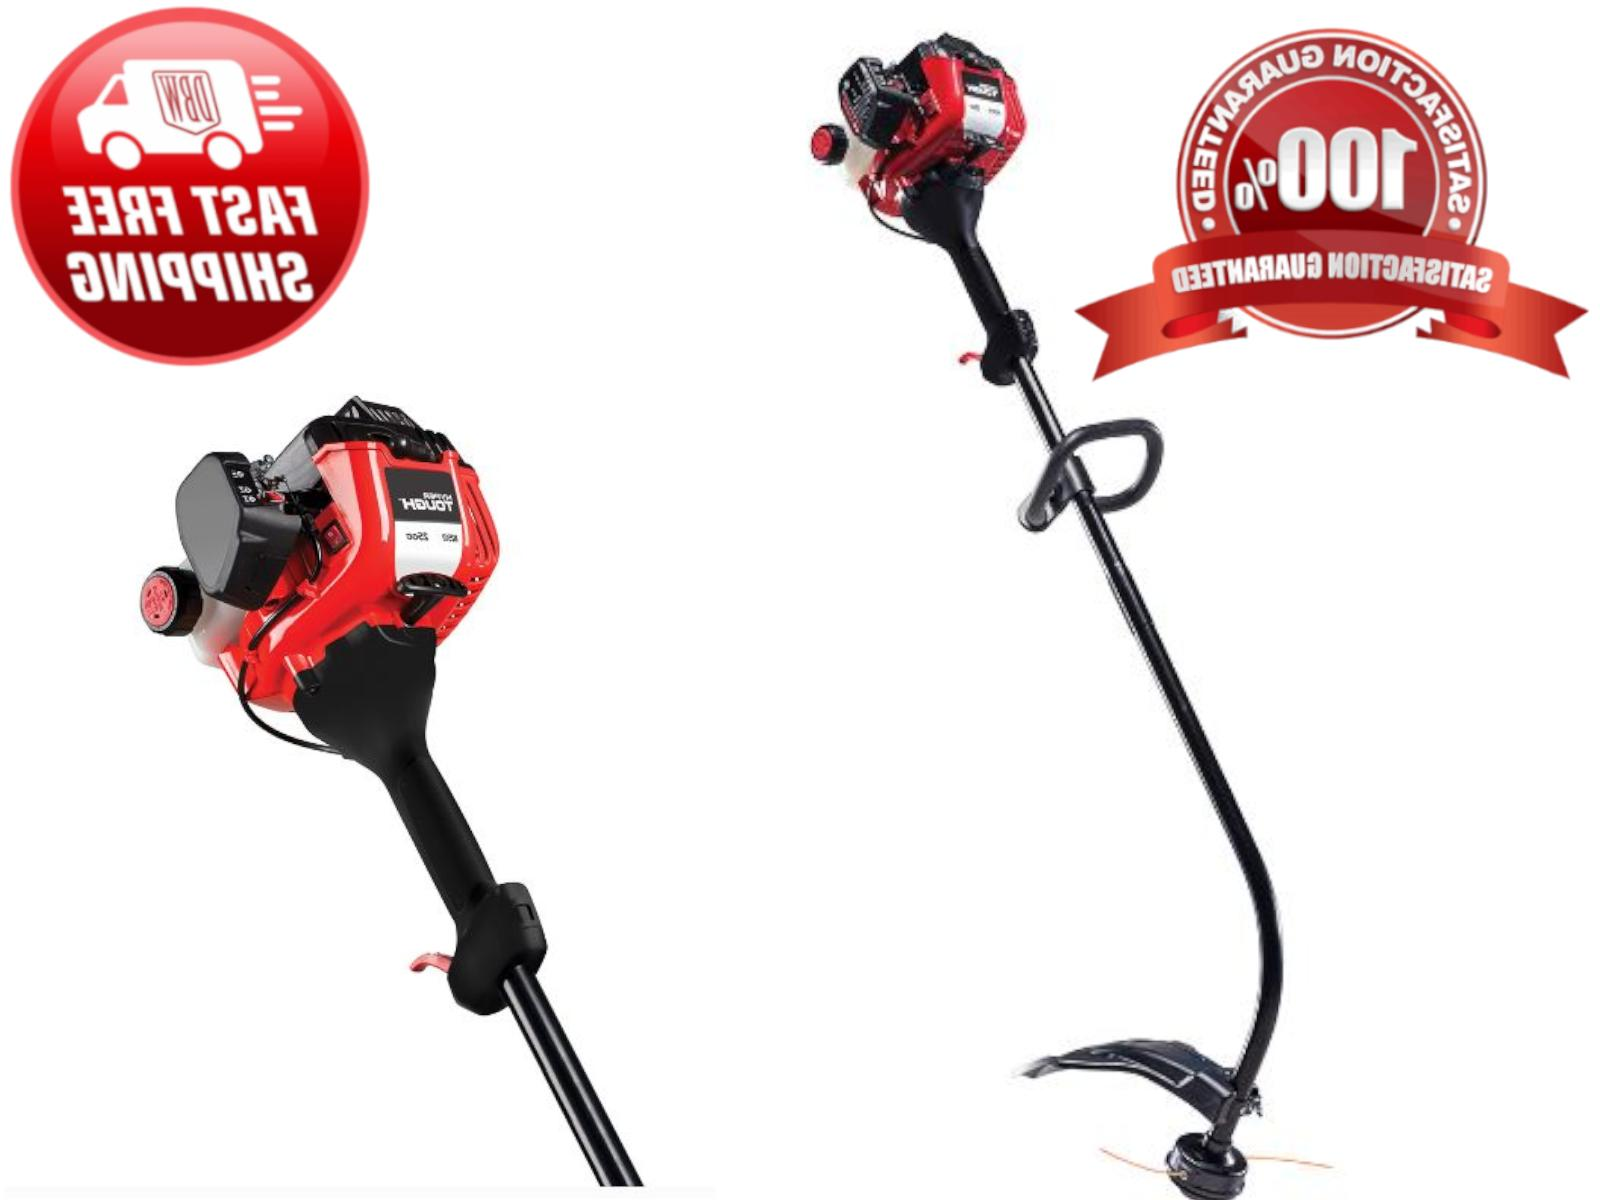 16 gas weed eater lawn and garden